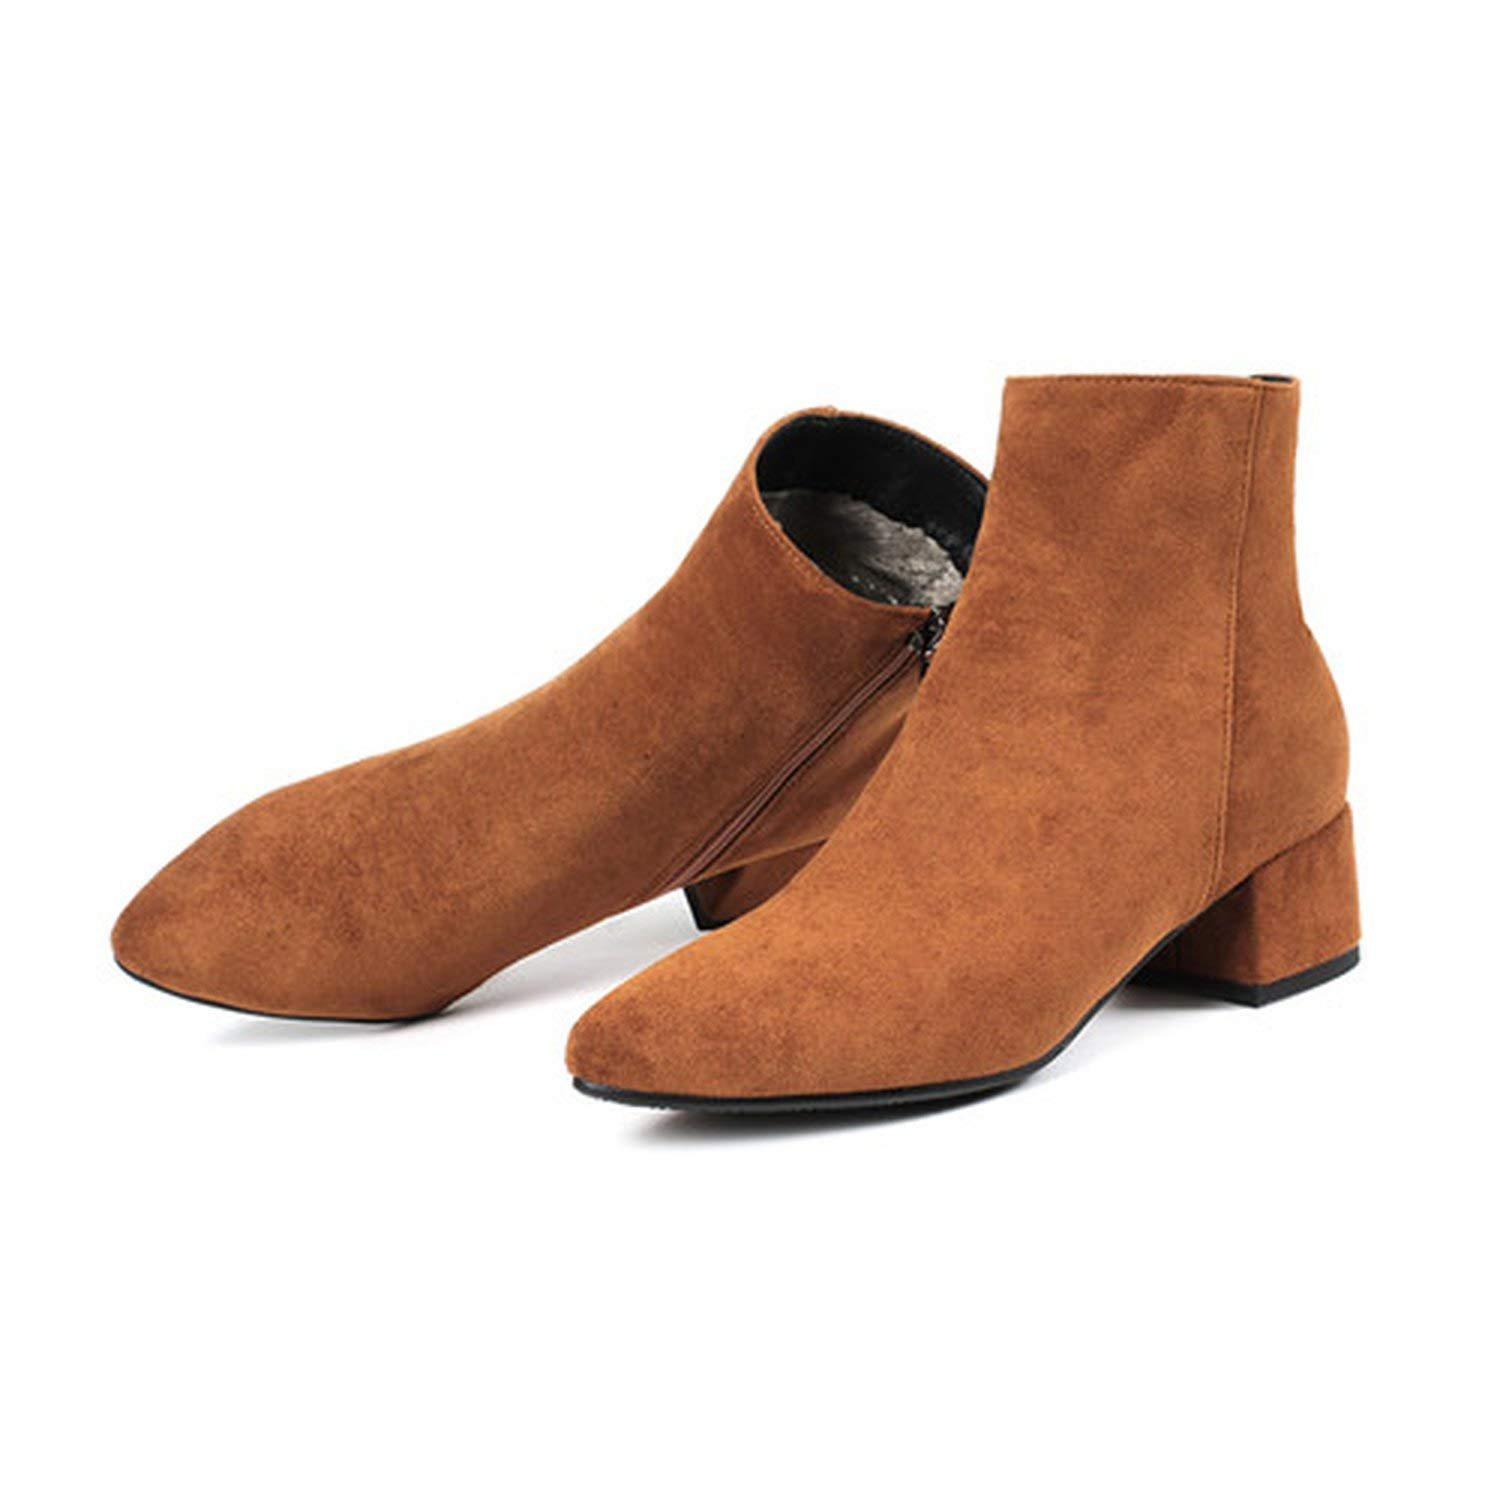 3 brown Women's Boots Pointed Toe Yarn Elastic Ankle Boots Thick Heel High Heels shoes